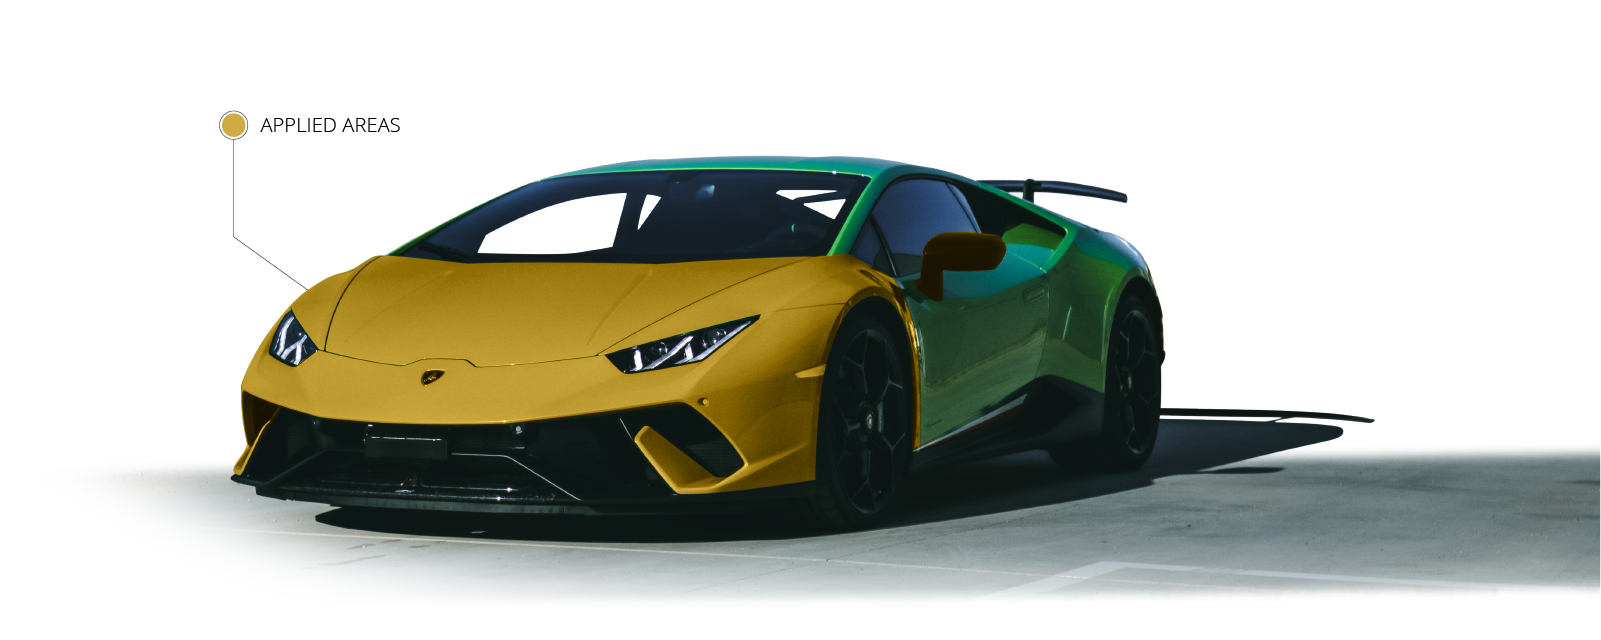 WAX-IT Detailing PPF Detail Paint Protection Film Full Front Label Lamborghini